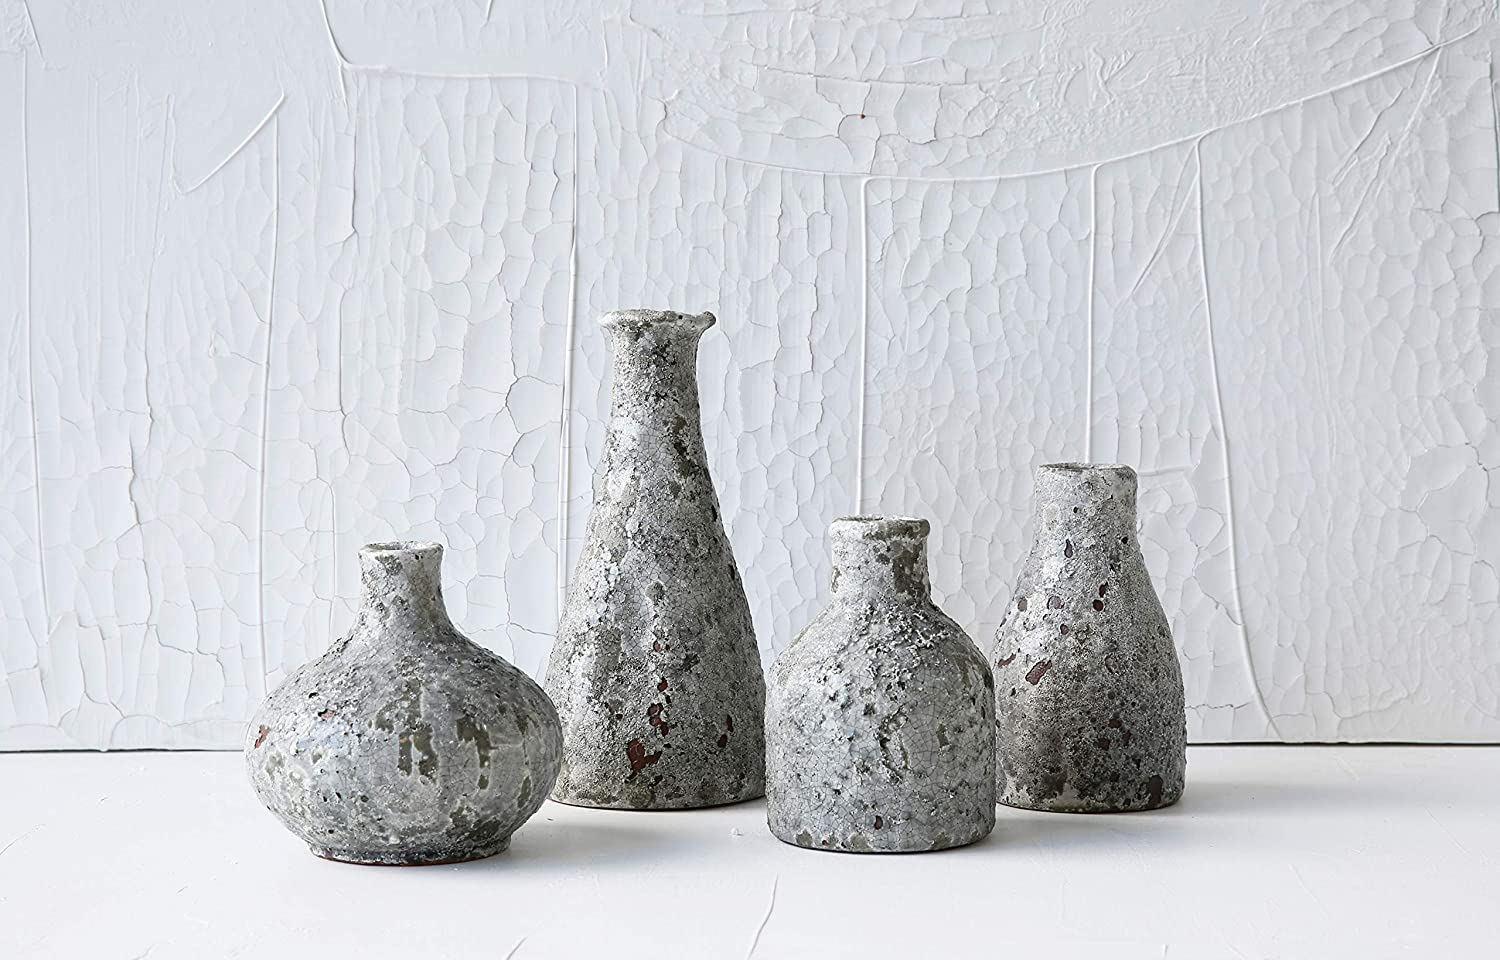 Rustic and distressed, these grey vases impart French farmhouse style and European country charm.